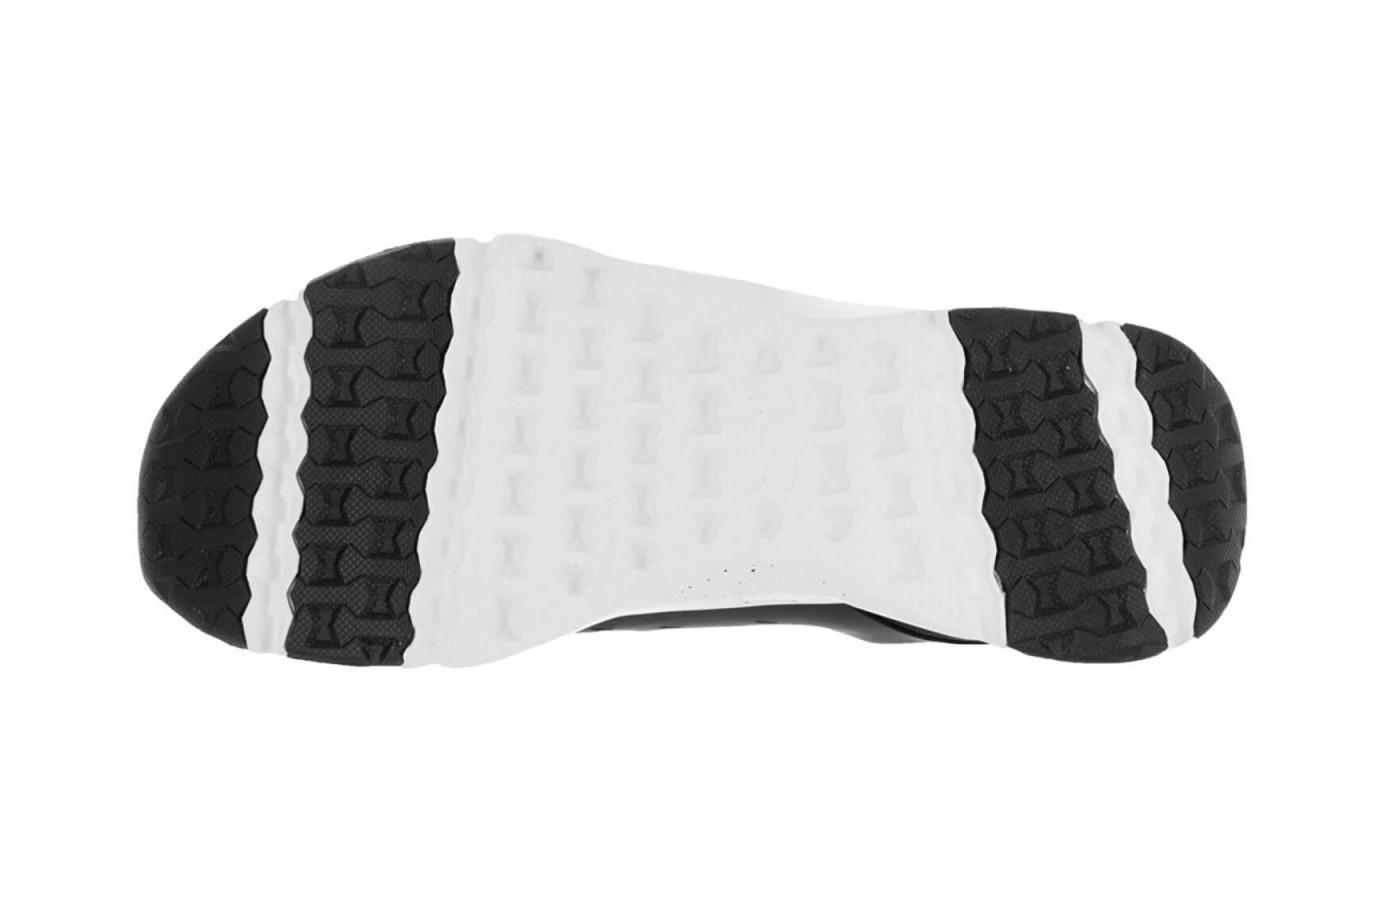 The UA Drift has a strategically designed outsole